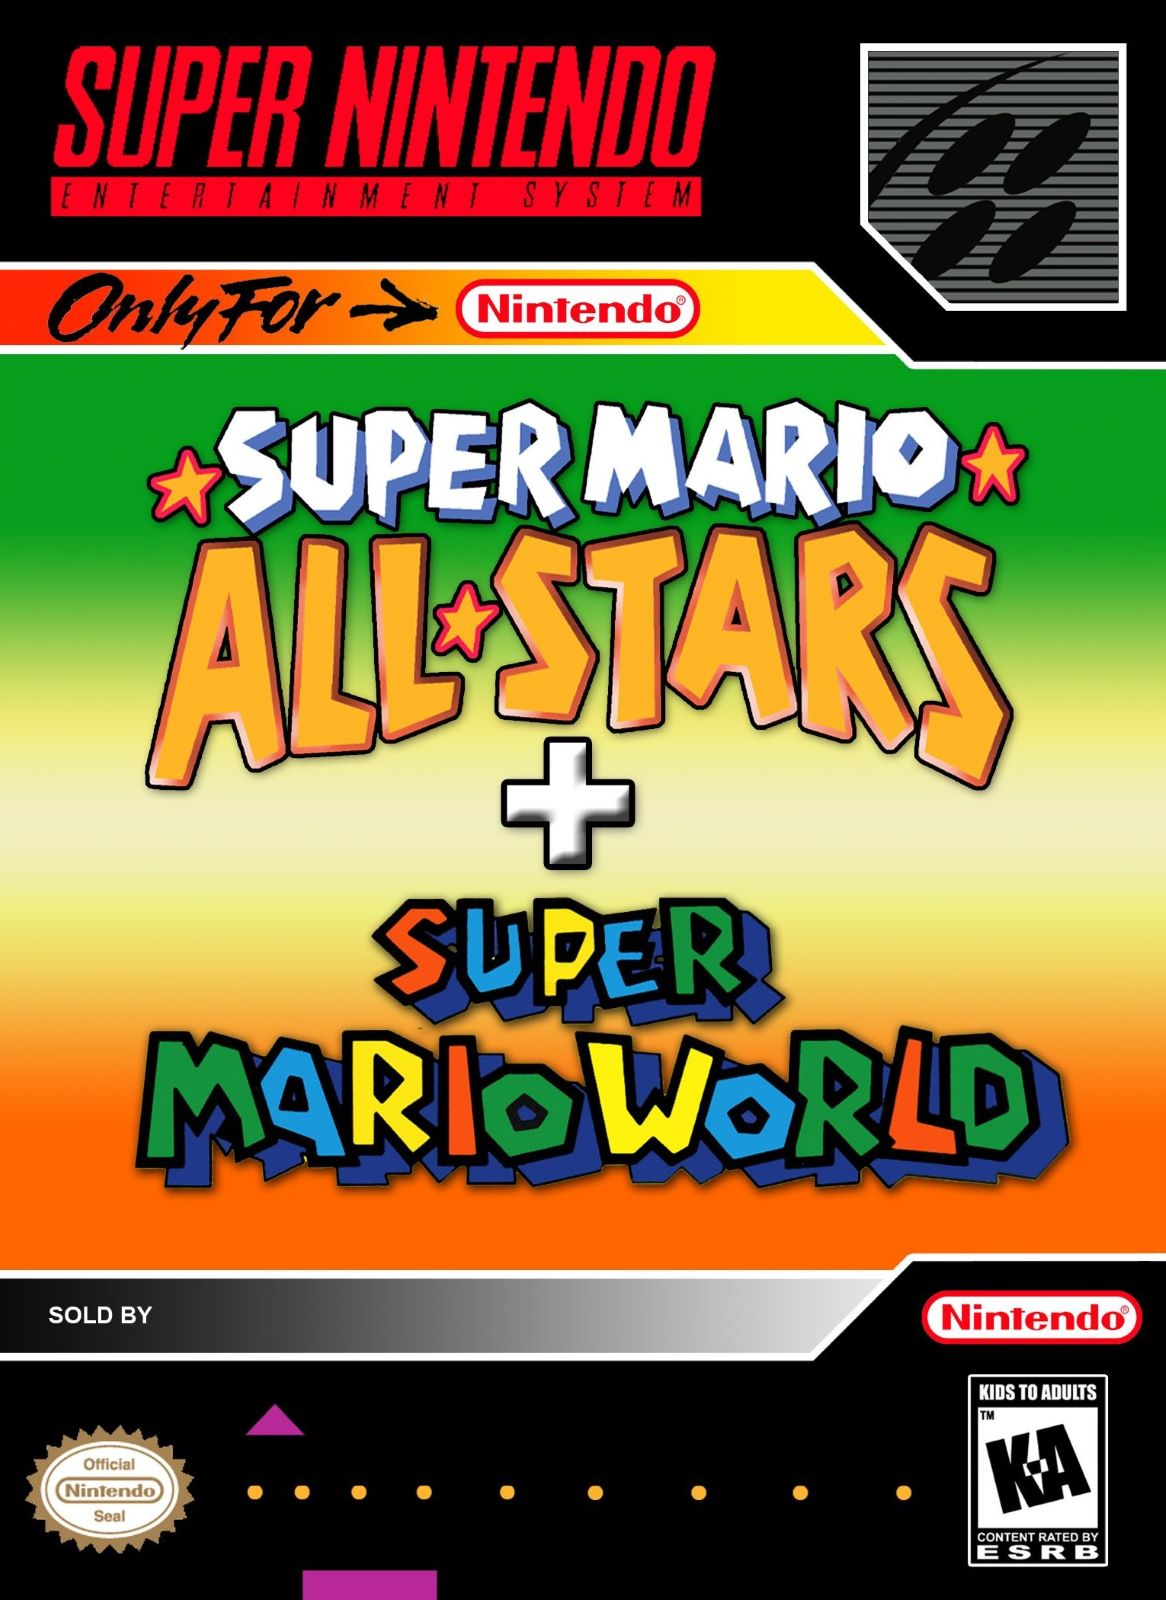 Super Nintendo Games | Buy SNES Consoles | Used Systems